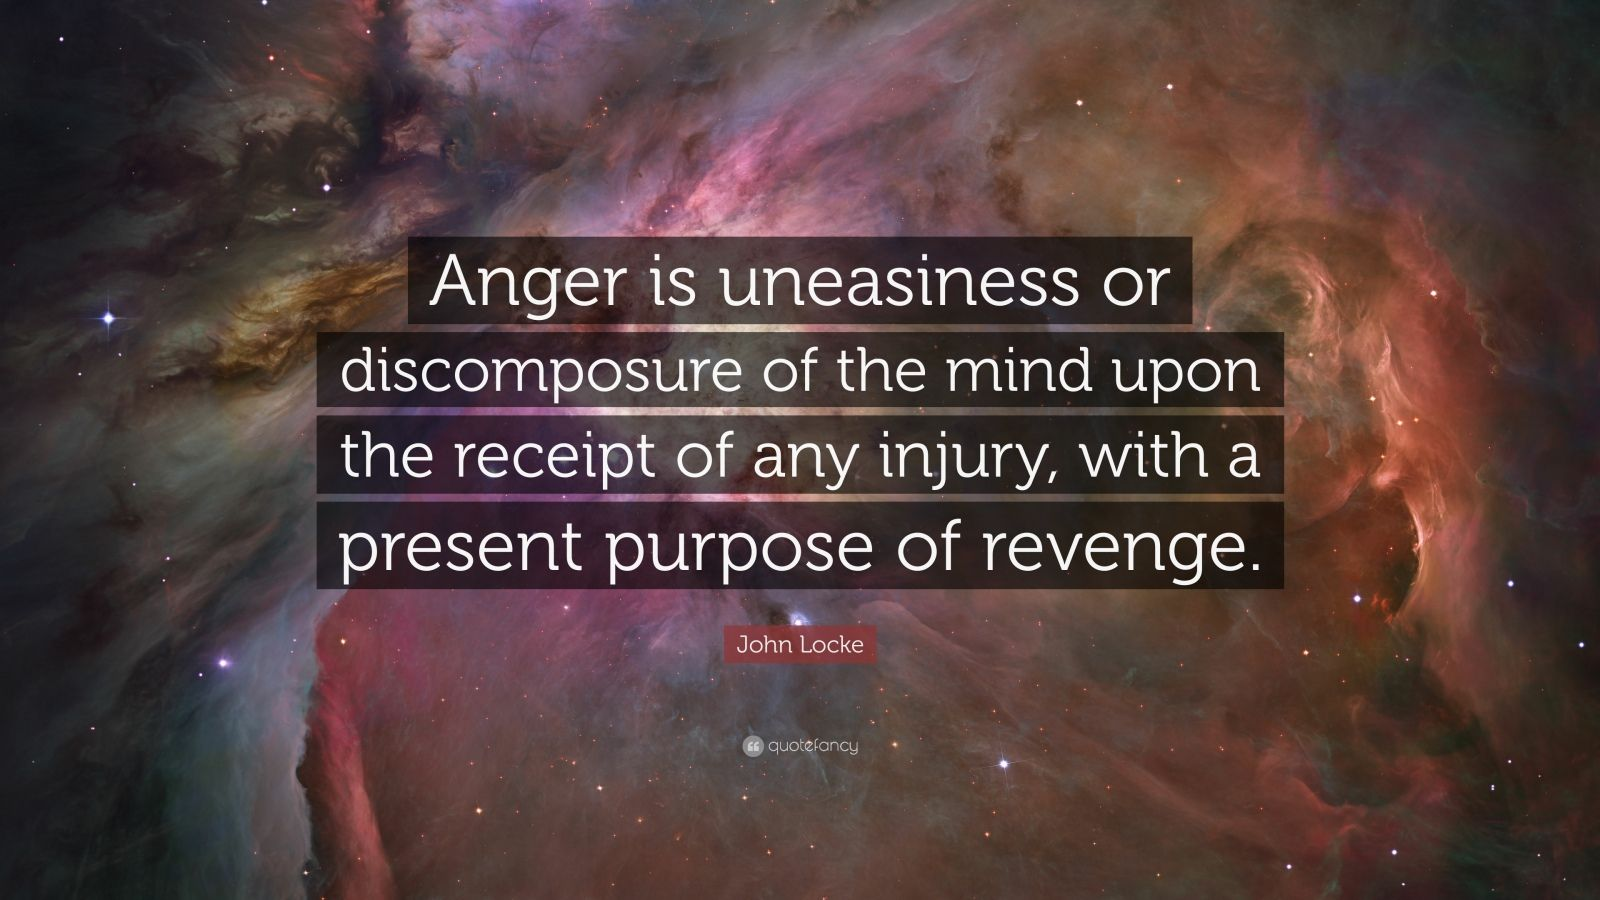 """John Locke Quote: """"Anger is uneasiness or discomposure of the mind upon the receipt of any injury, with a present purpose of revenge."""""""